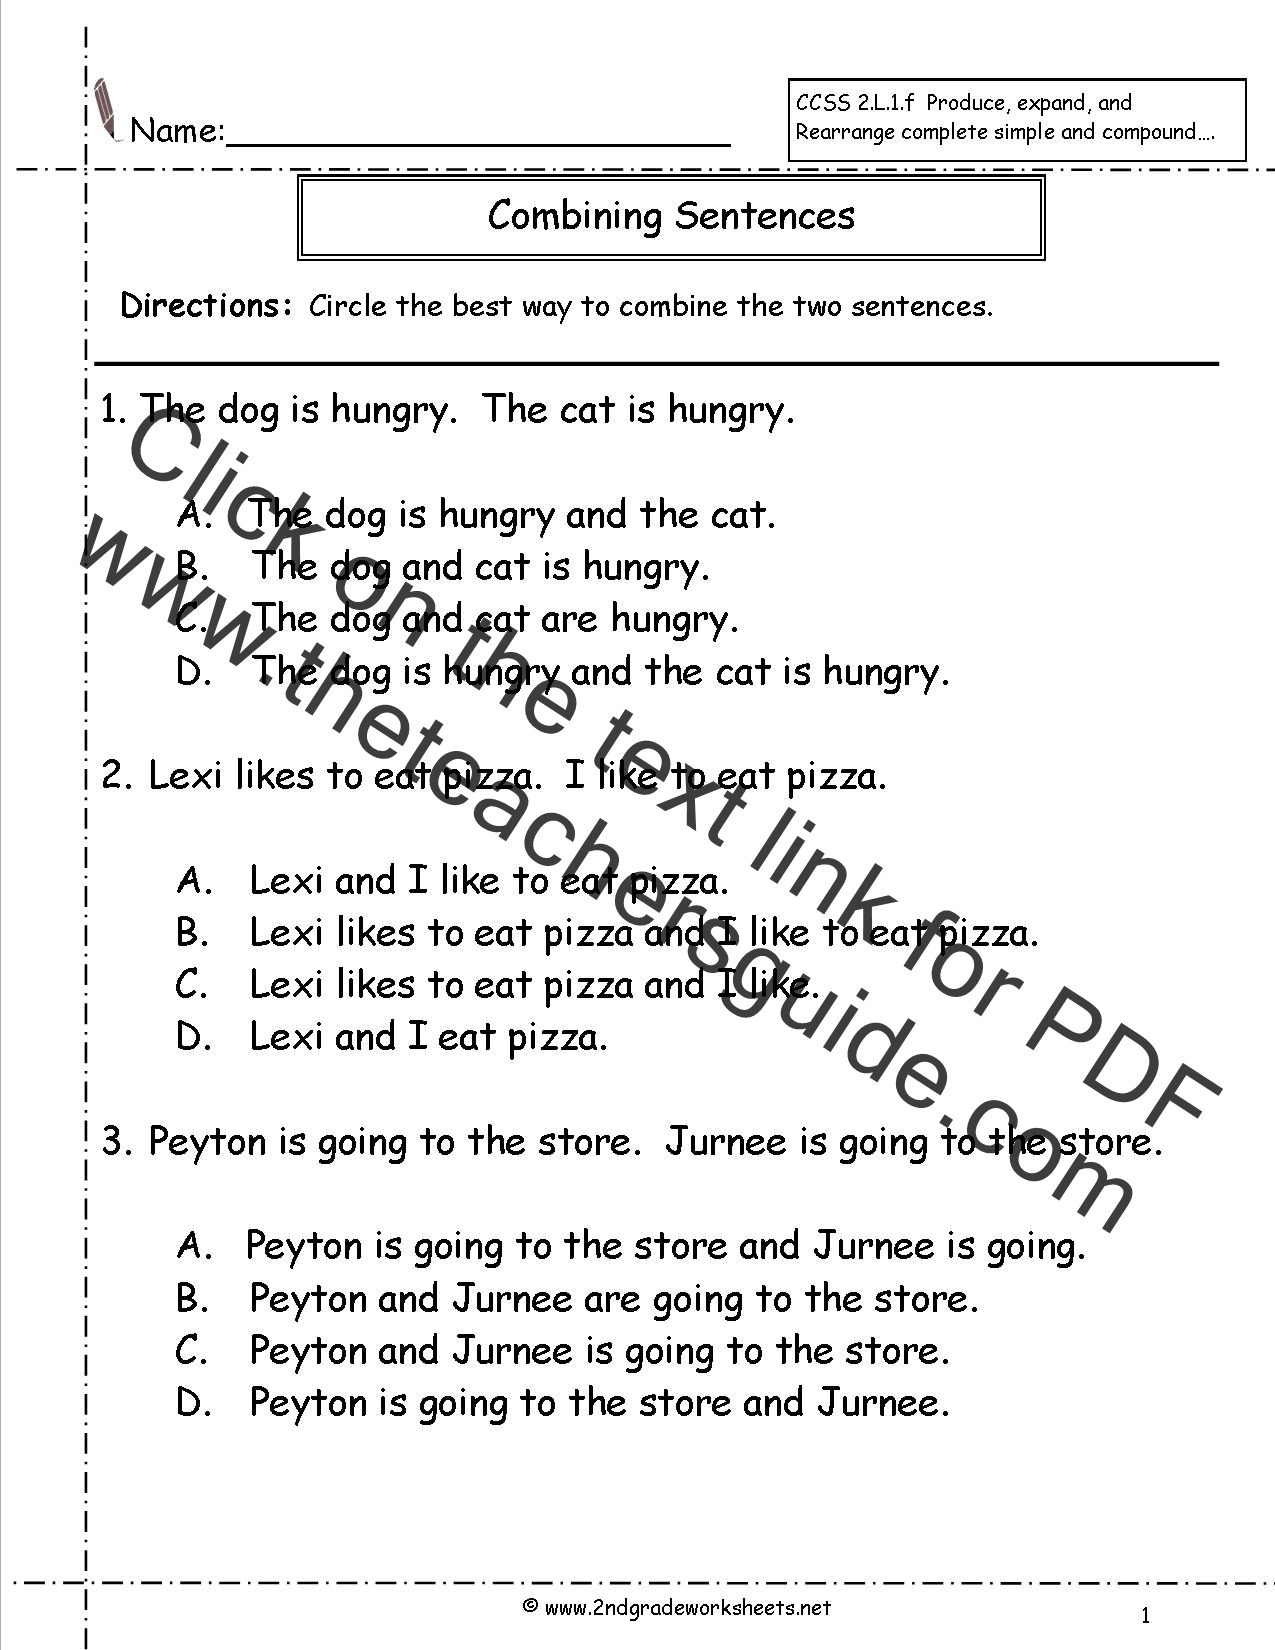 Worksheets 2nd Grade Sentence Worksheets second grade sentences worksheets ccss 2 l 1 f combining worksheet